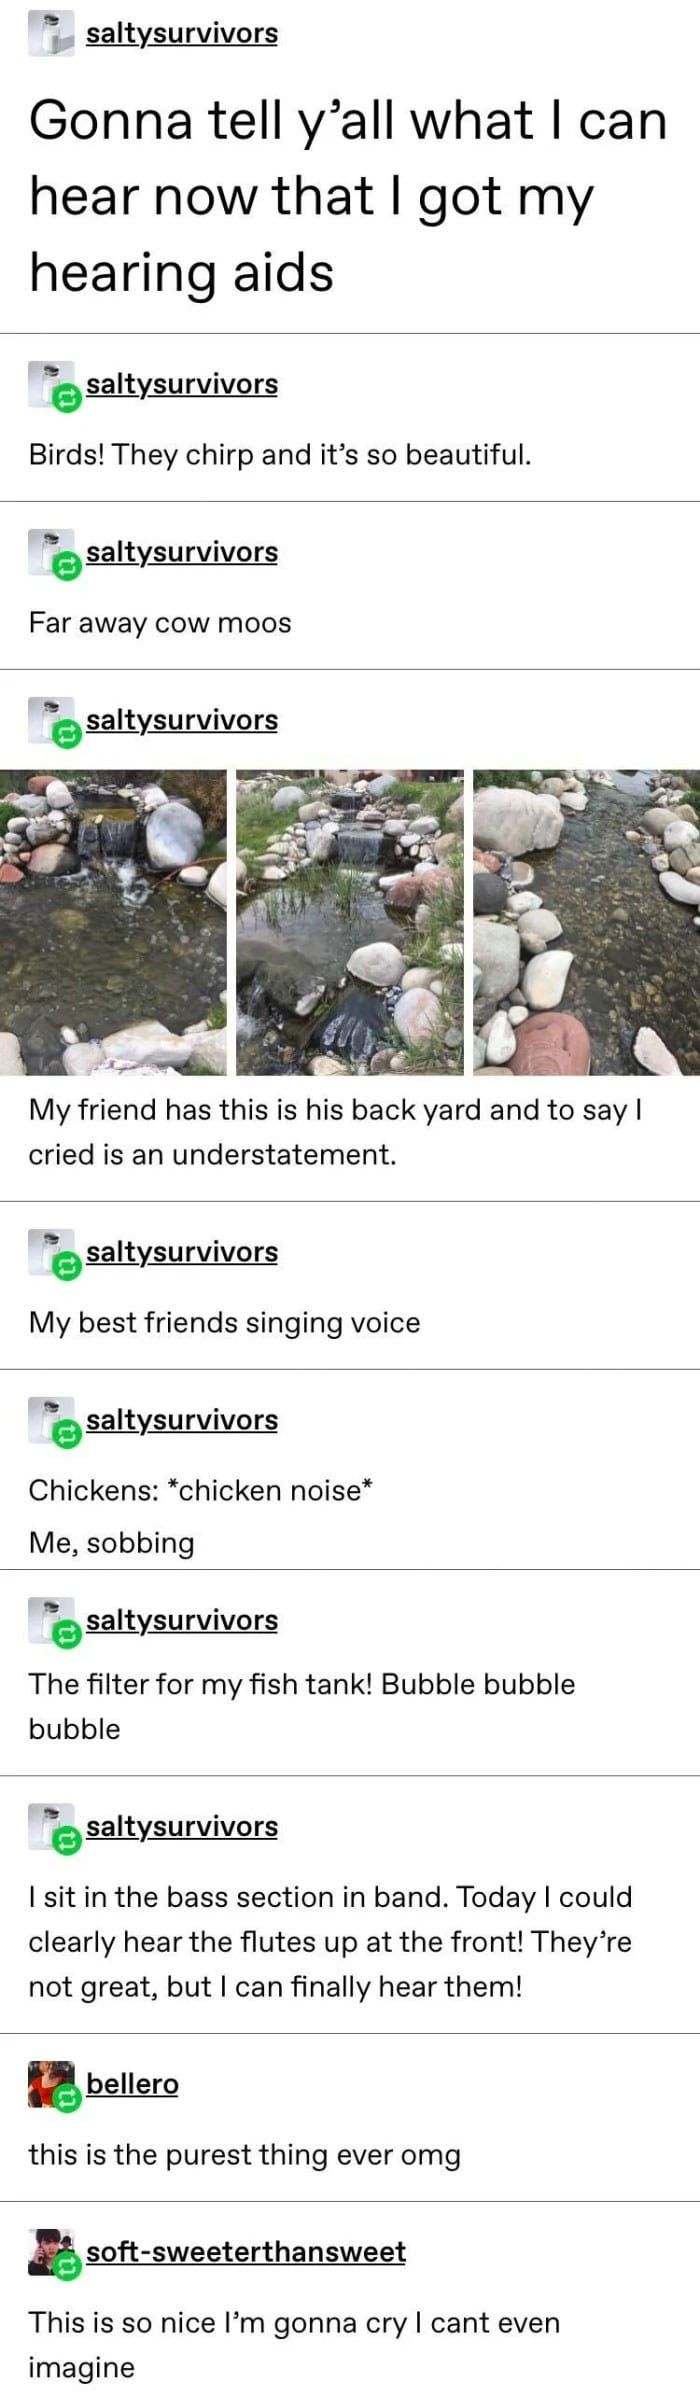 The 17 Best Tumblr Posts I Found This Week